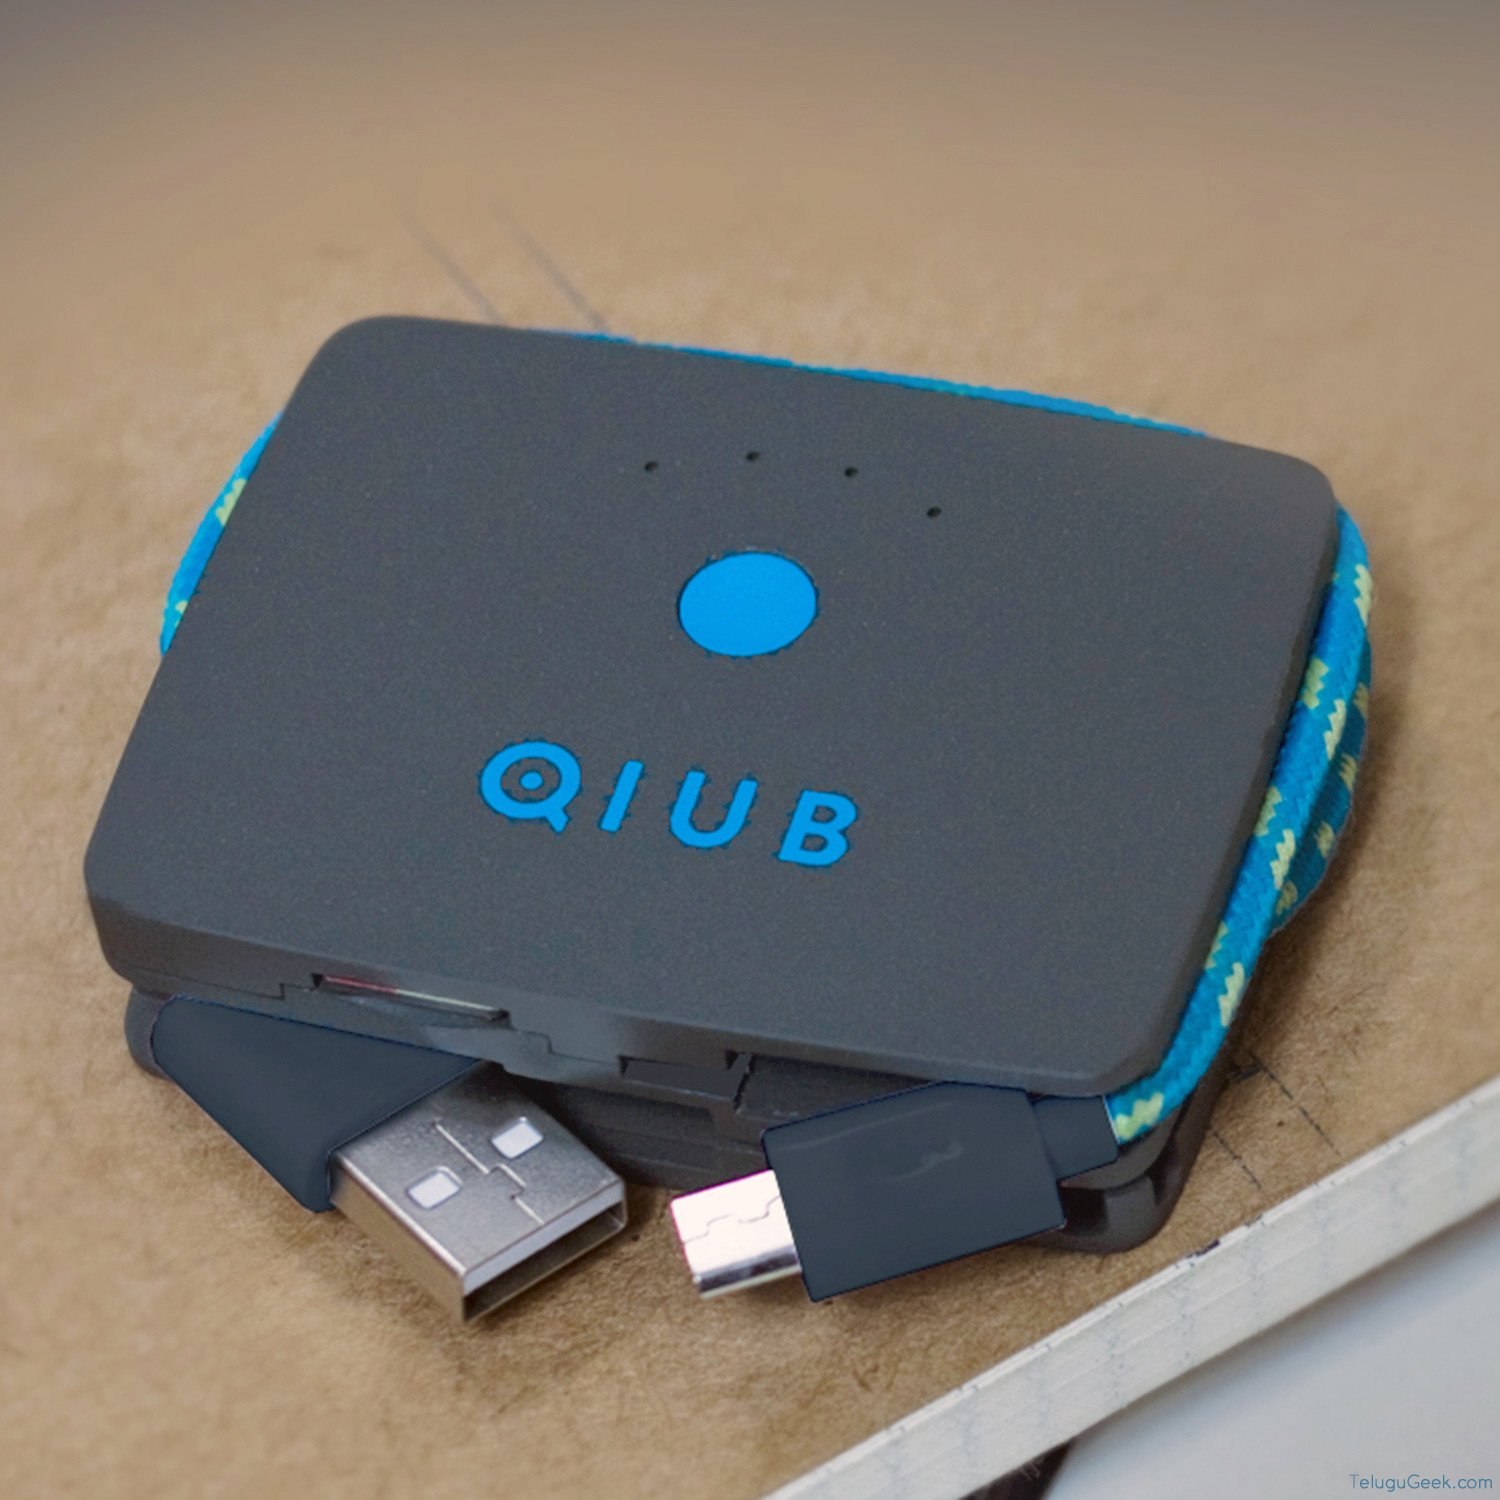 QUIB smart power bank